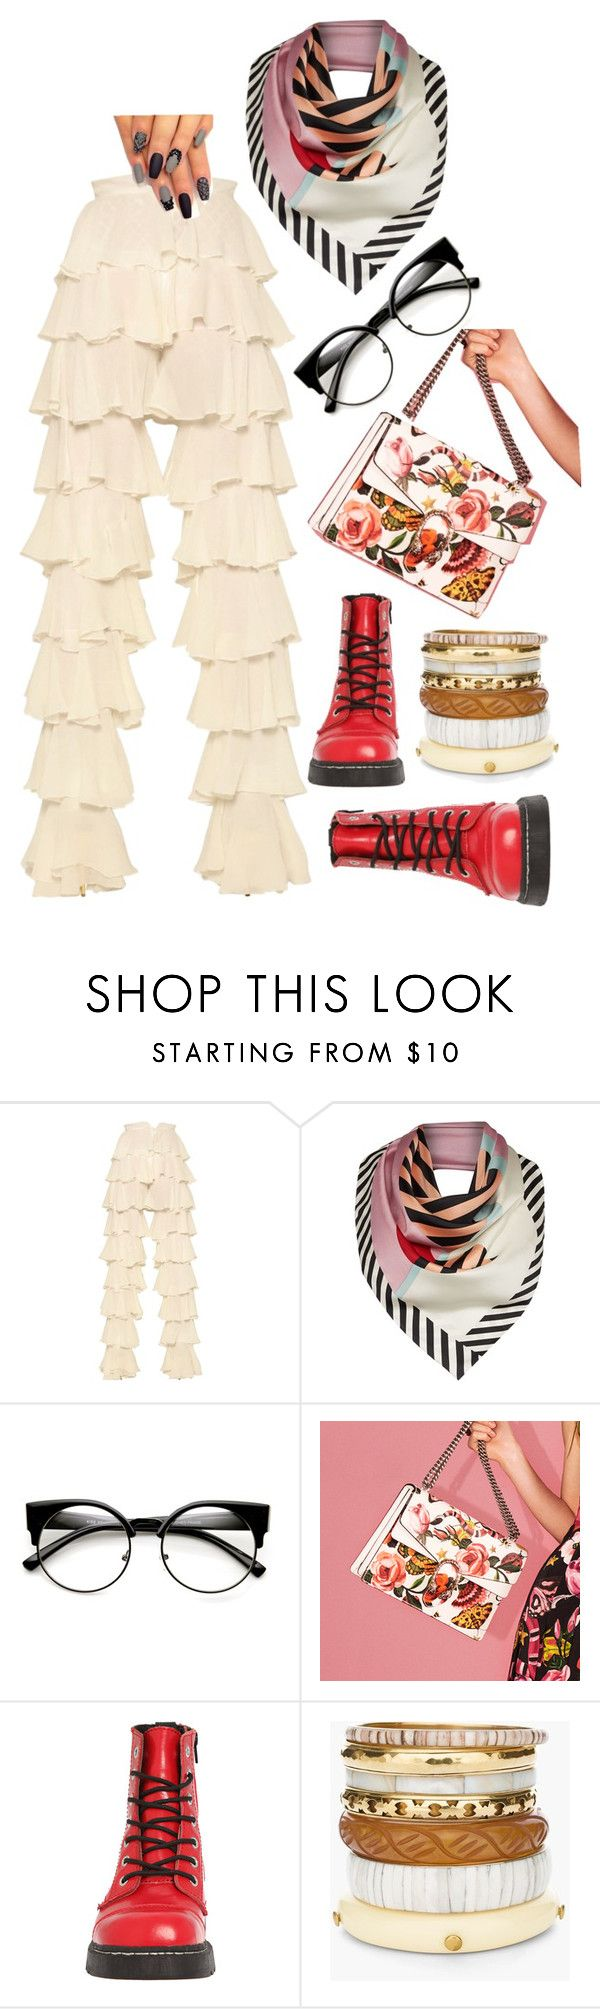 """White-off-day"" by stapleluc on Polyvore featuring Balmain, Lulu Guinness, Gucci, T.U.K. and Chico's"